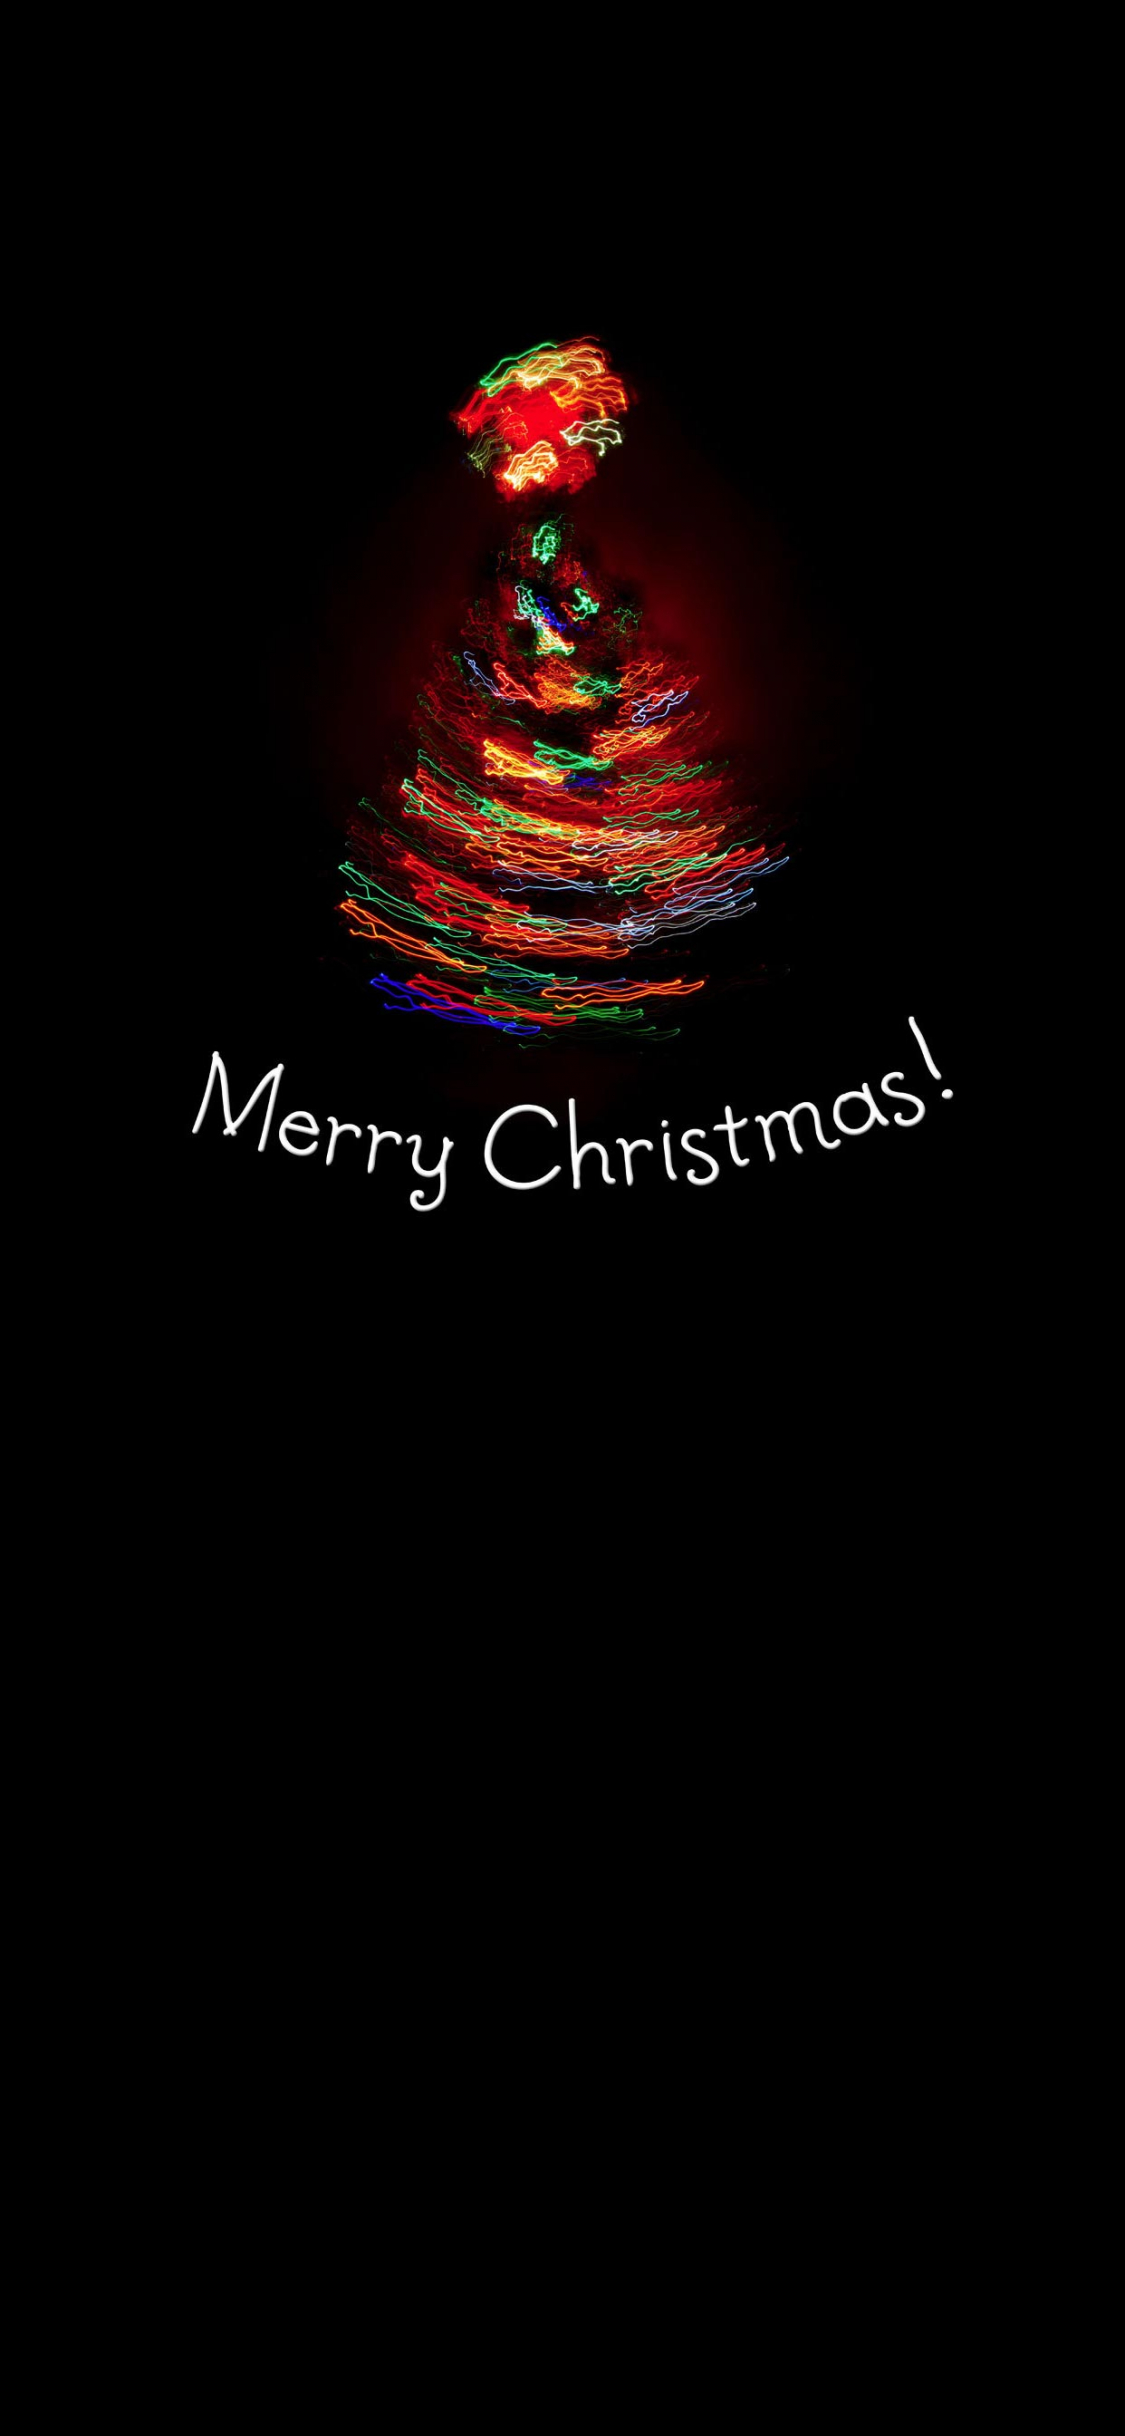 Free Download 40 Beautiful Iphone 11 Pro Max Christmas Wallpapers Backgrounds 1242x2688 For Your Desktop Mobile Tablet Explore 25 Christmas 2020 Wallpapers Christmas 2020 Wallpapers Happy Christmas 2020 Wallpapers 2020 Christmas Pictures